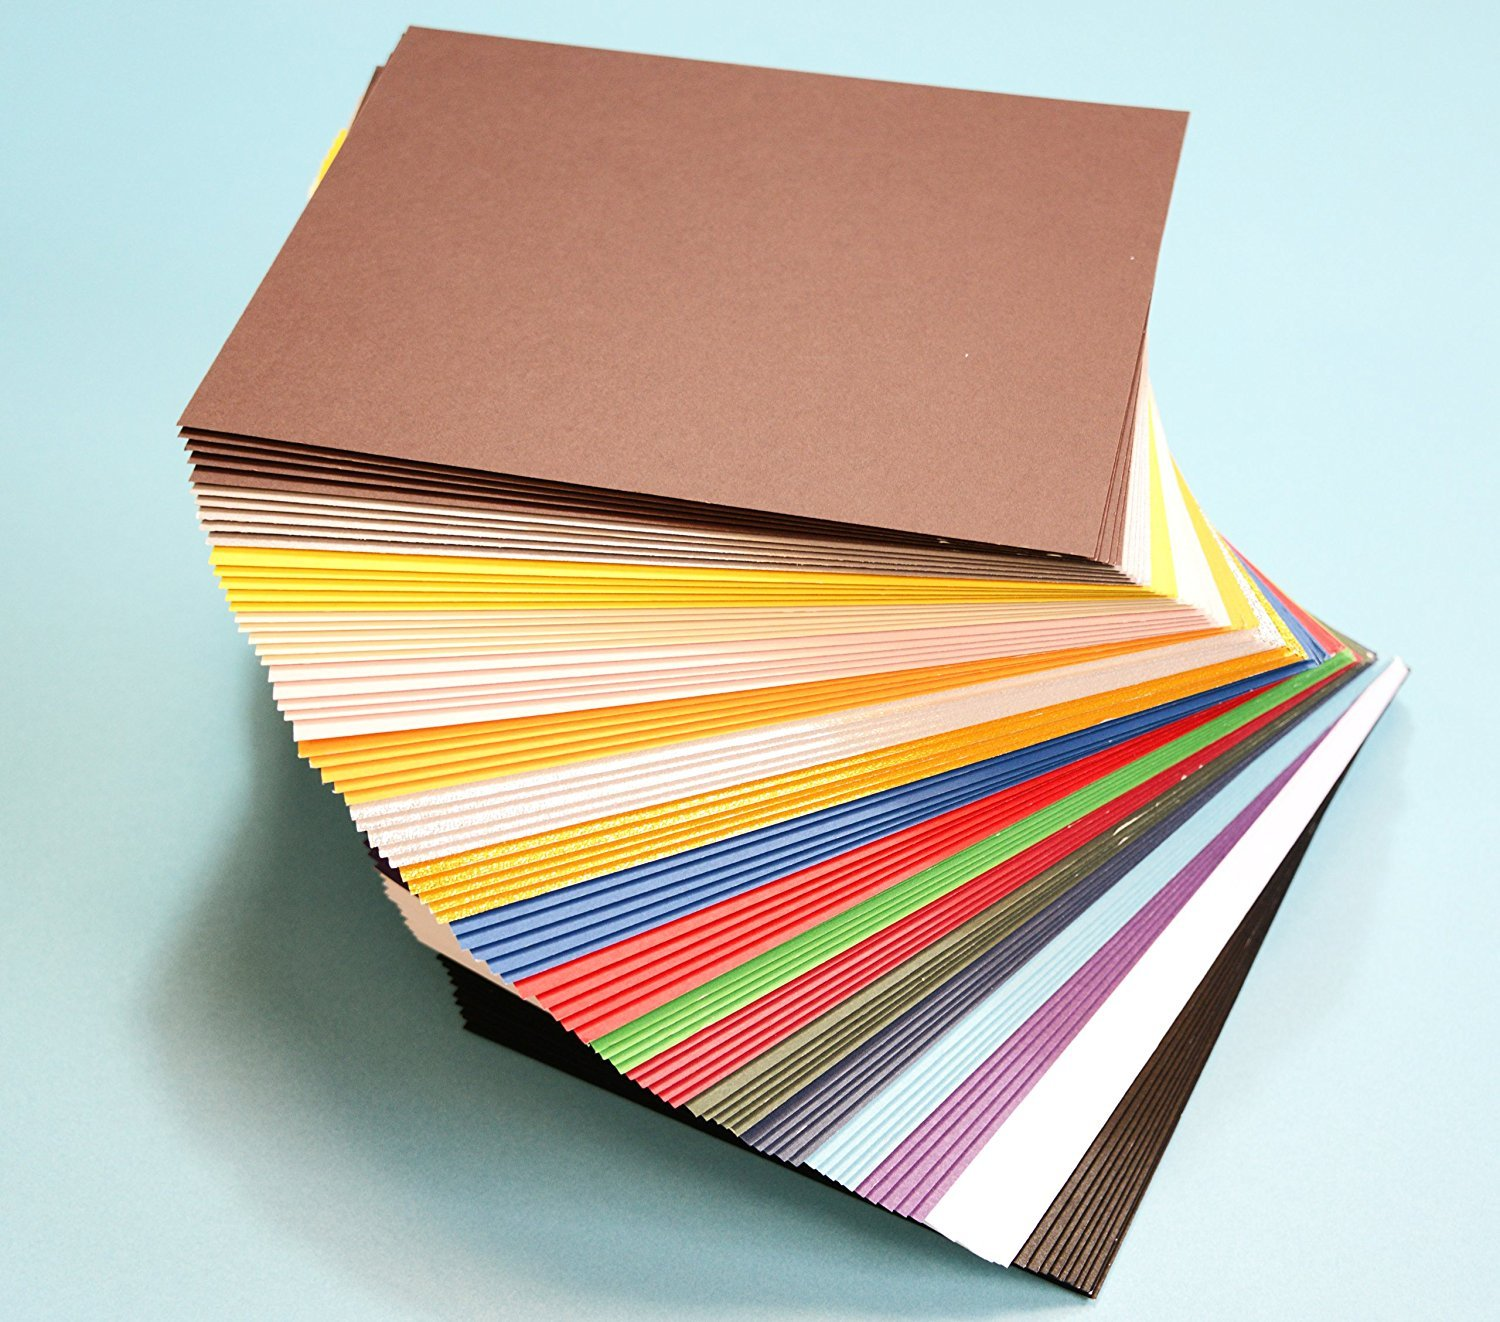 """Pack of 100 MIXED COLORS 7.5""""x9.5"""" UNCUT Mat Board / Matboard Blanks for Framing / Crafting"""